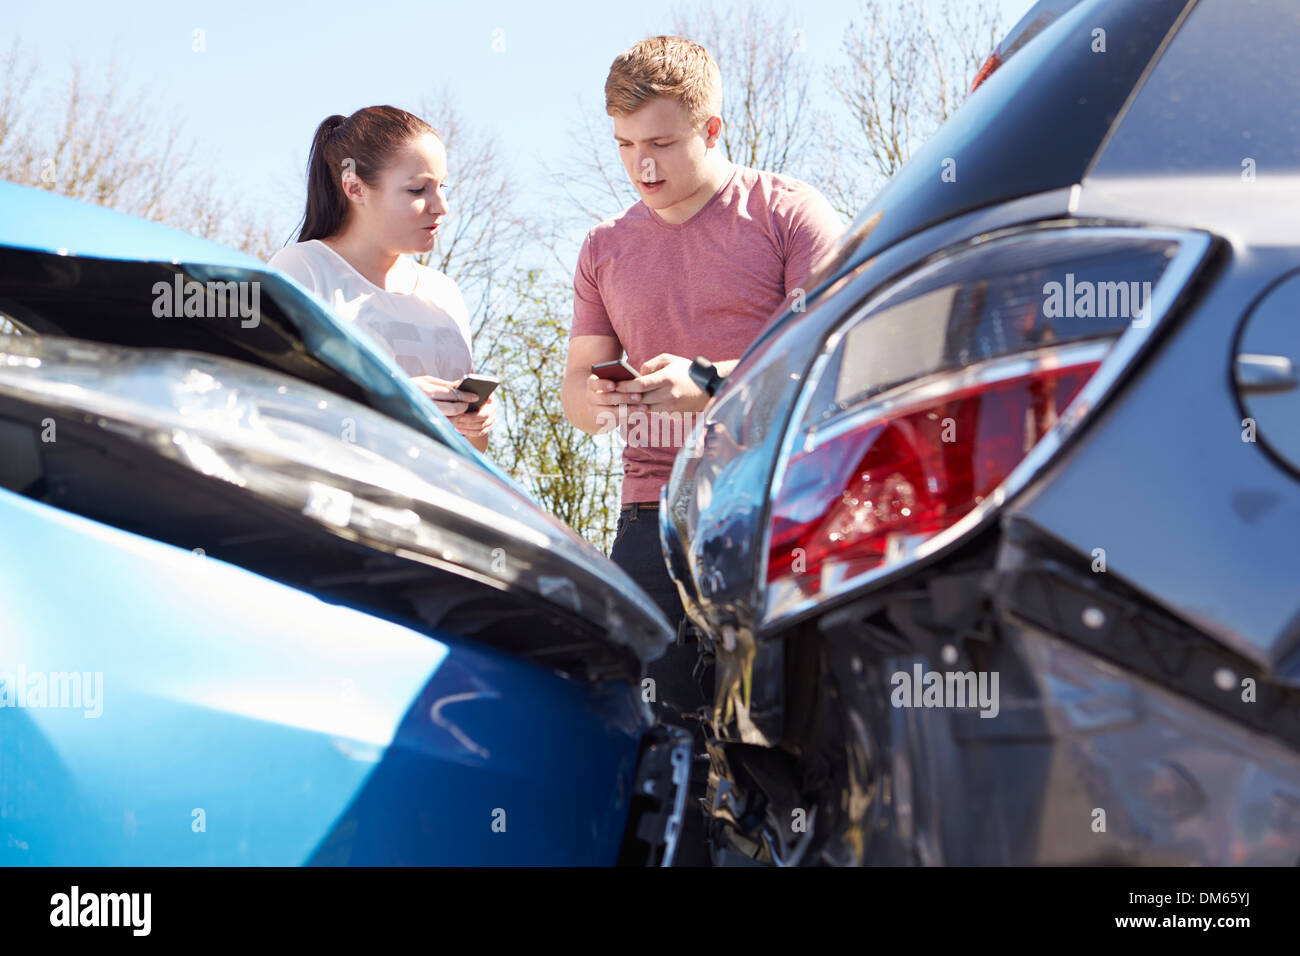 Two Drivers Exchange Insurance Details After Accident - Stock Image